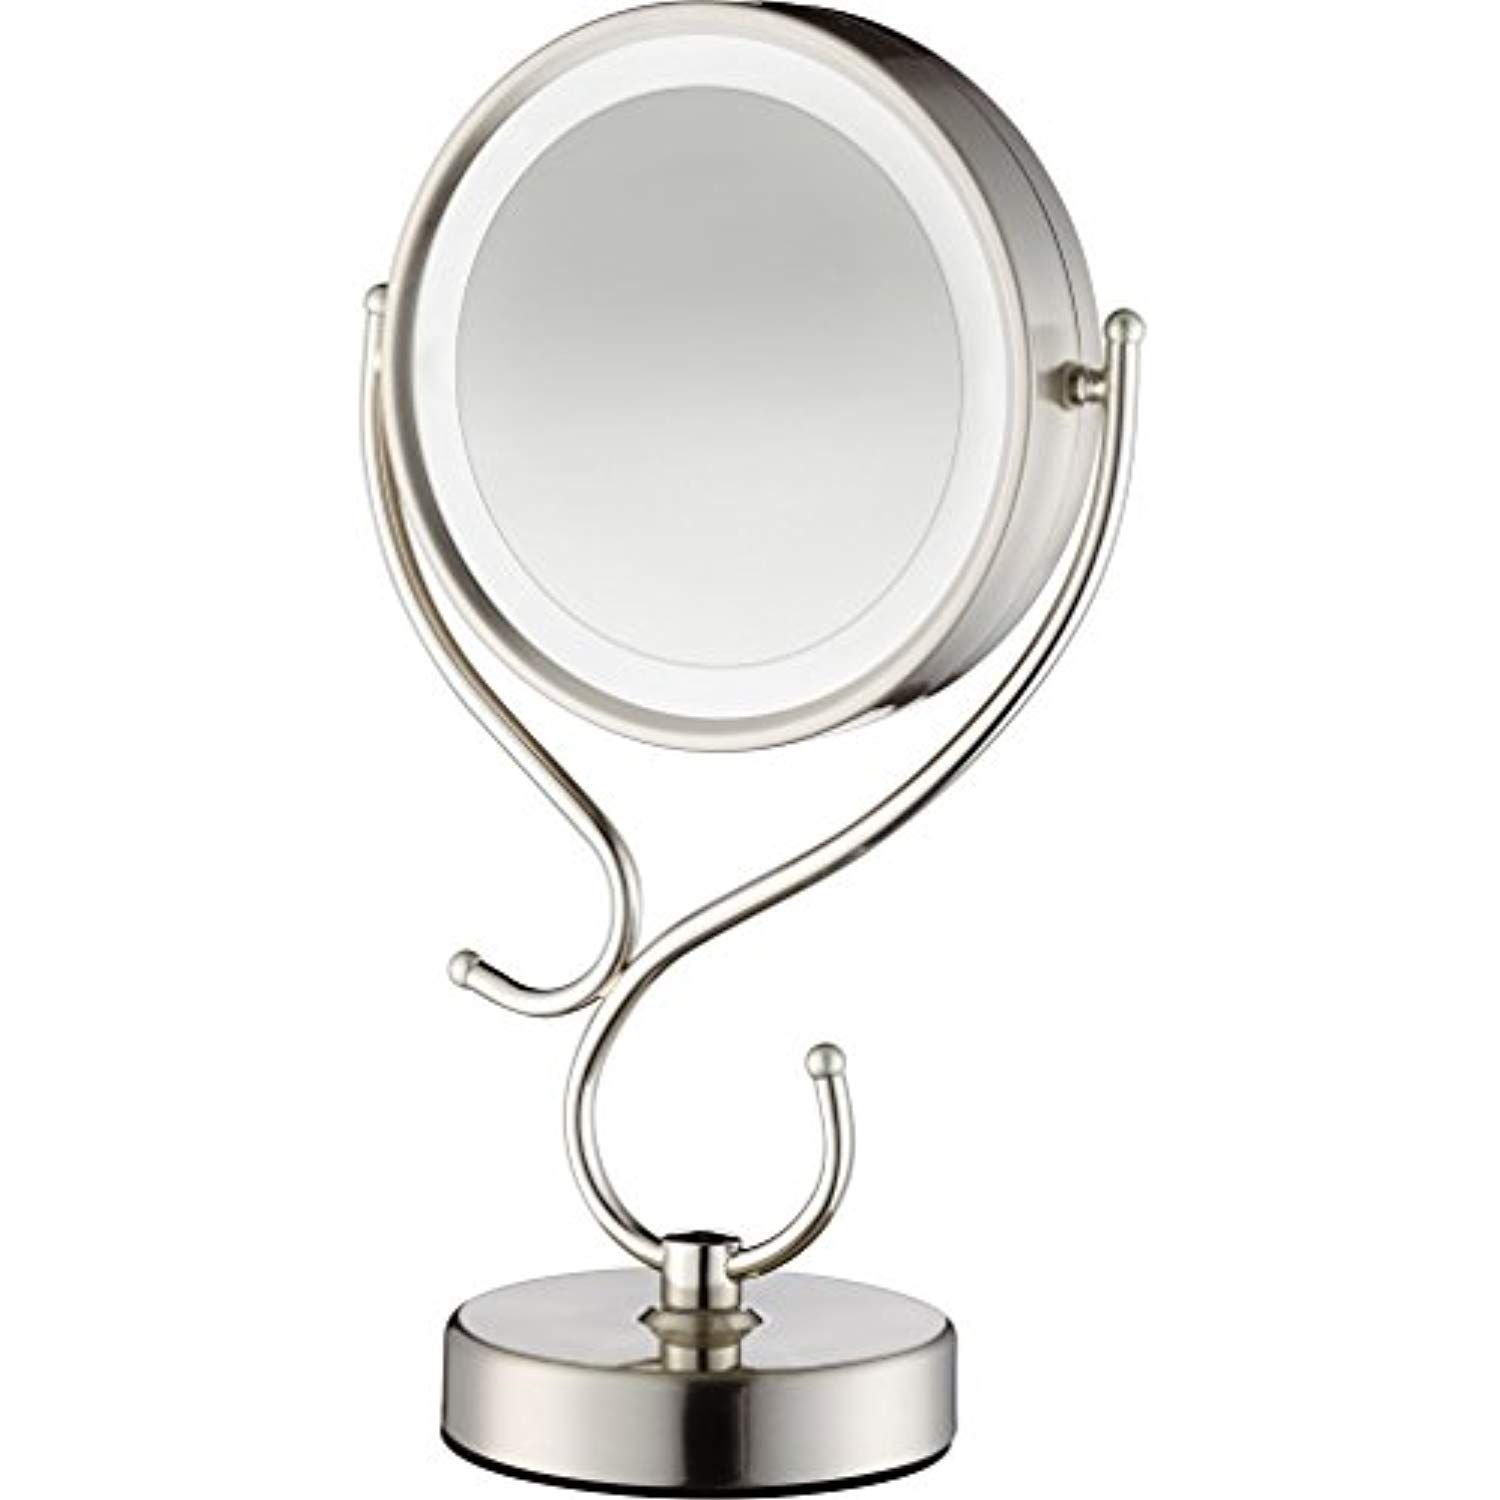 Conair Round Shaped Led Double Sided Lighted Makeup Mirror With 3 Way Touch Control And Built In Ubs Port Cli Makeup Mirror With Lights Mirror Makeup Mirror